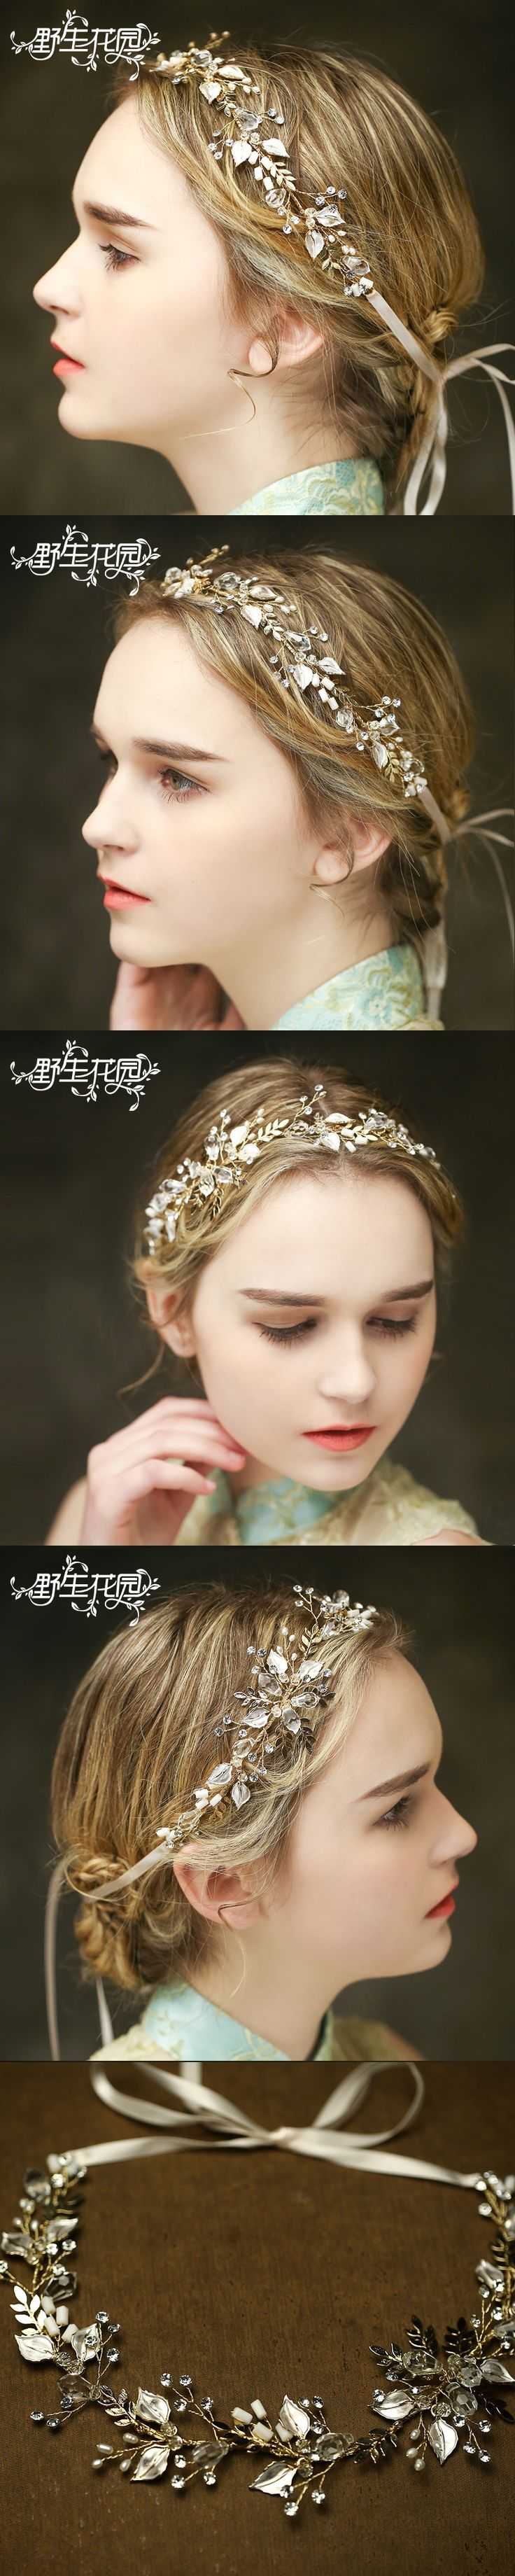 Fashion Jewelry Crystal Leaves Flower Handmade Hair Combs Headbands Hair Jewelry for women acessorio para cabelo